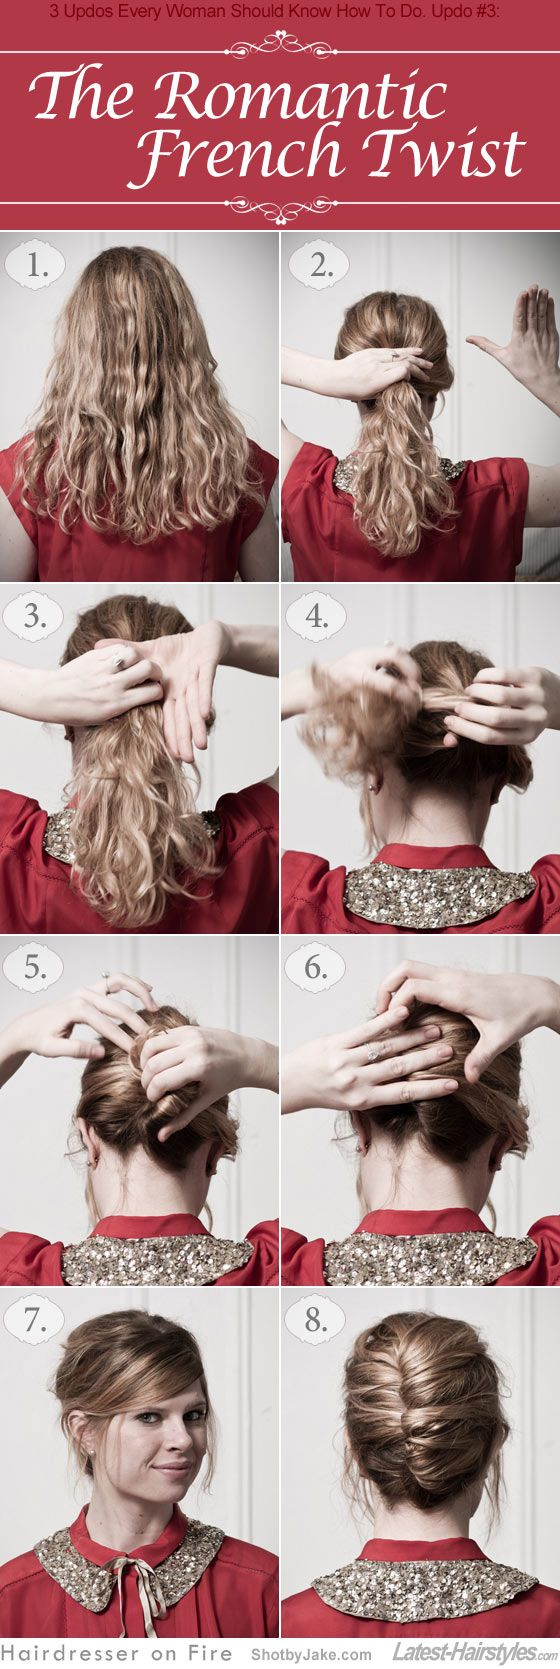 3 easy updos